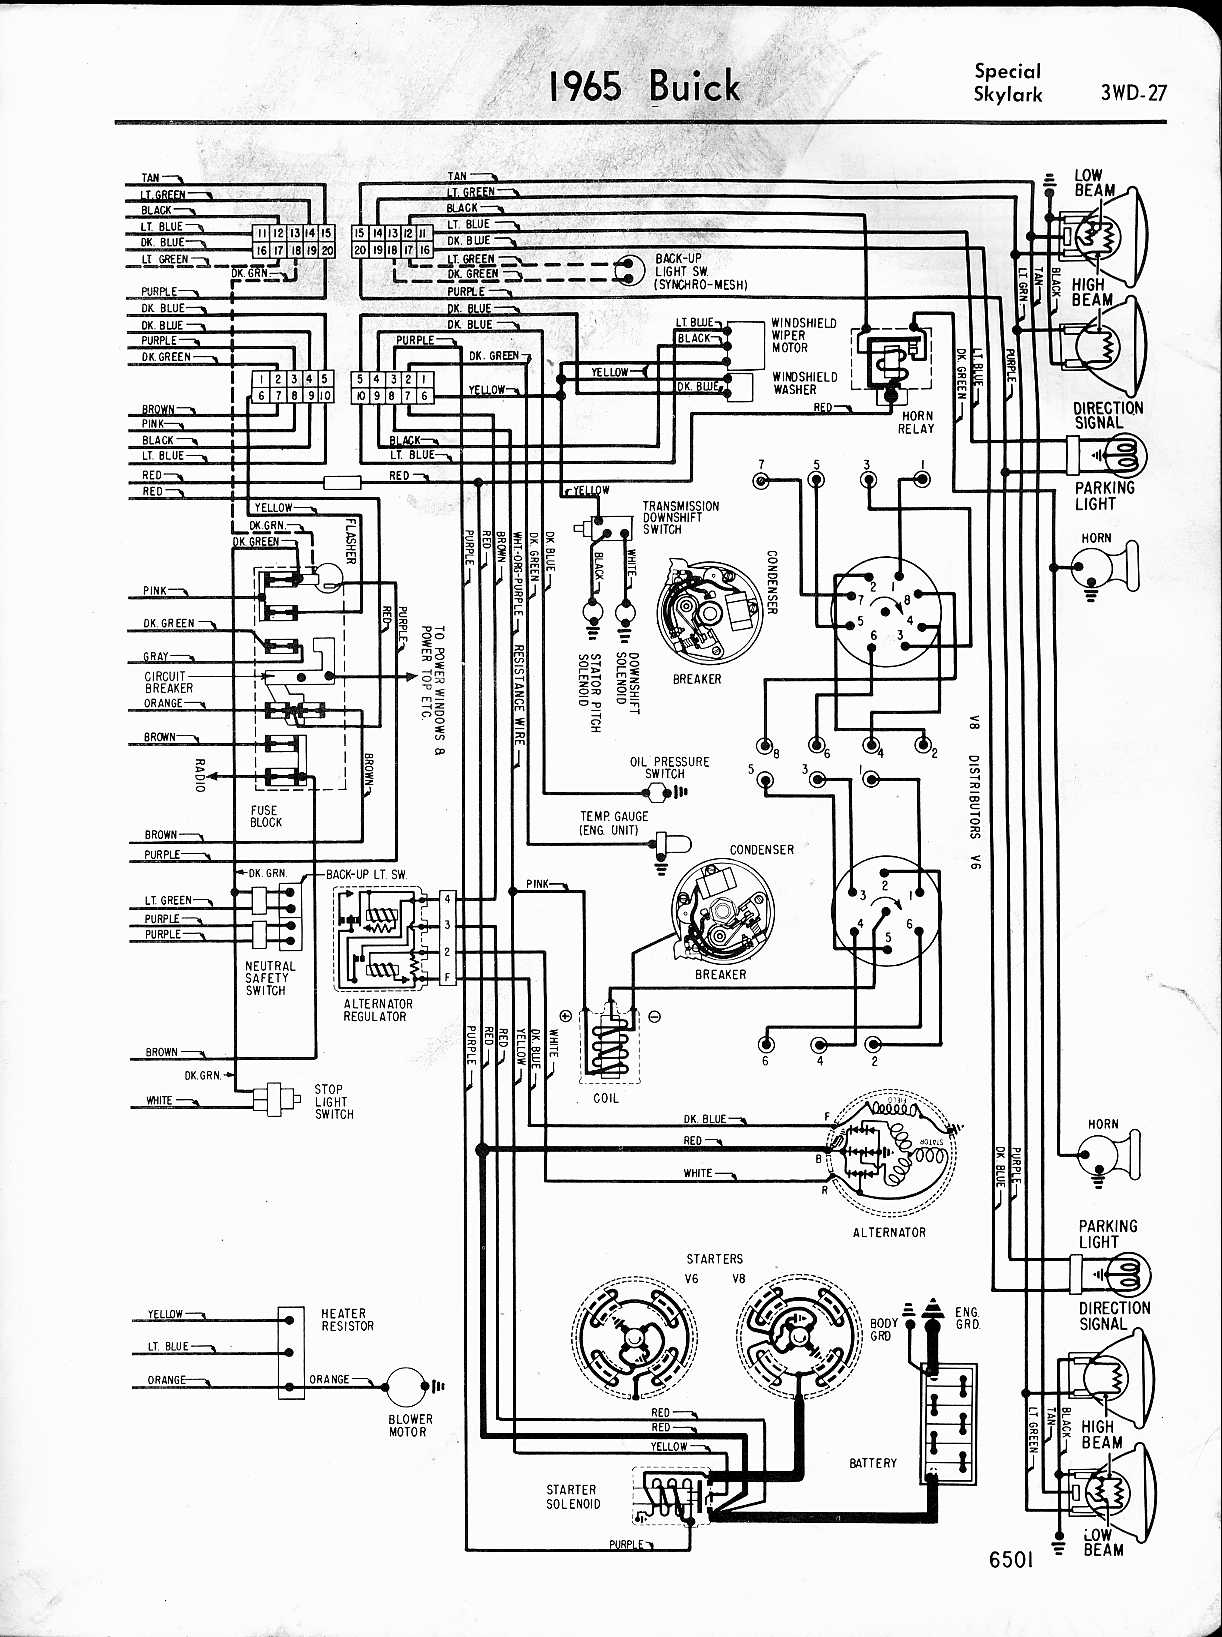 1964 Skylark Wiring Diagram on 66 chevy impala wiring diagram